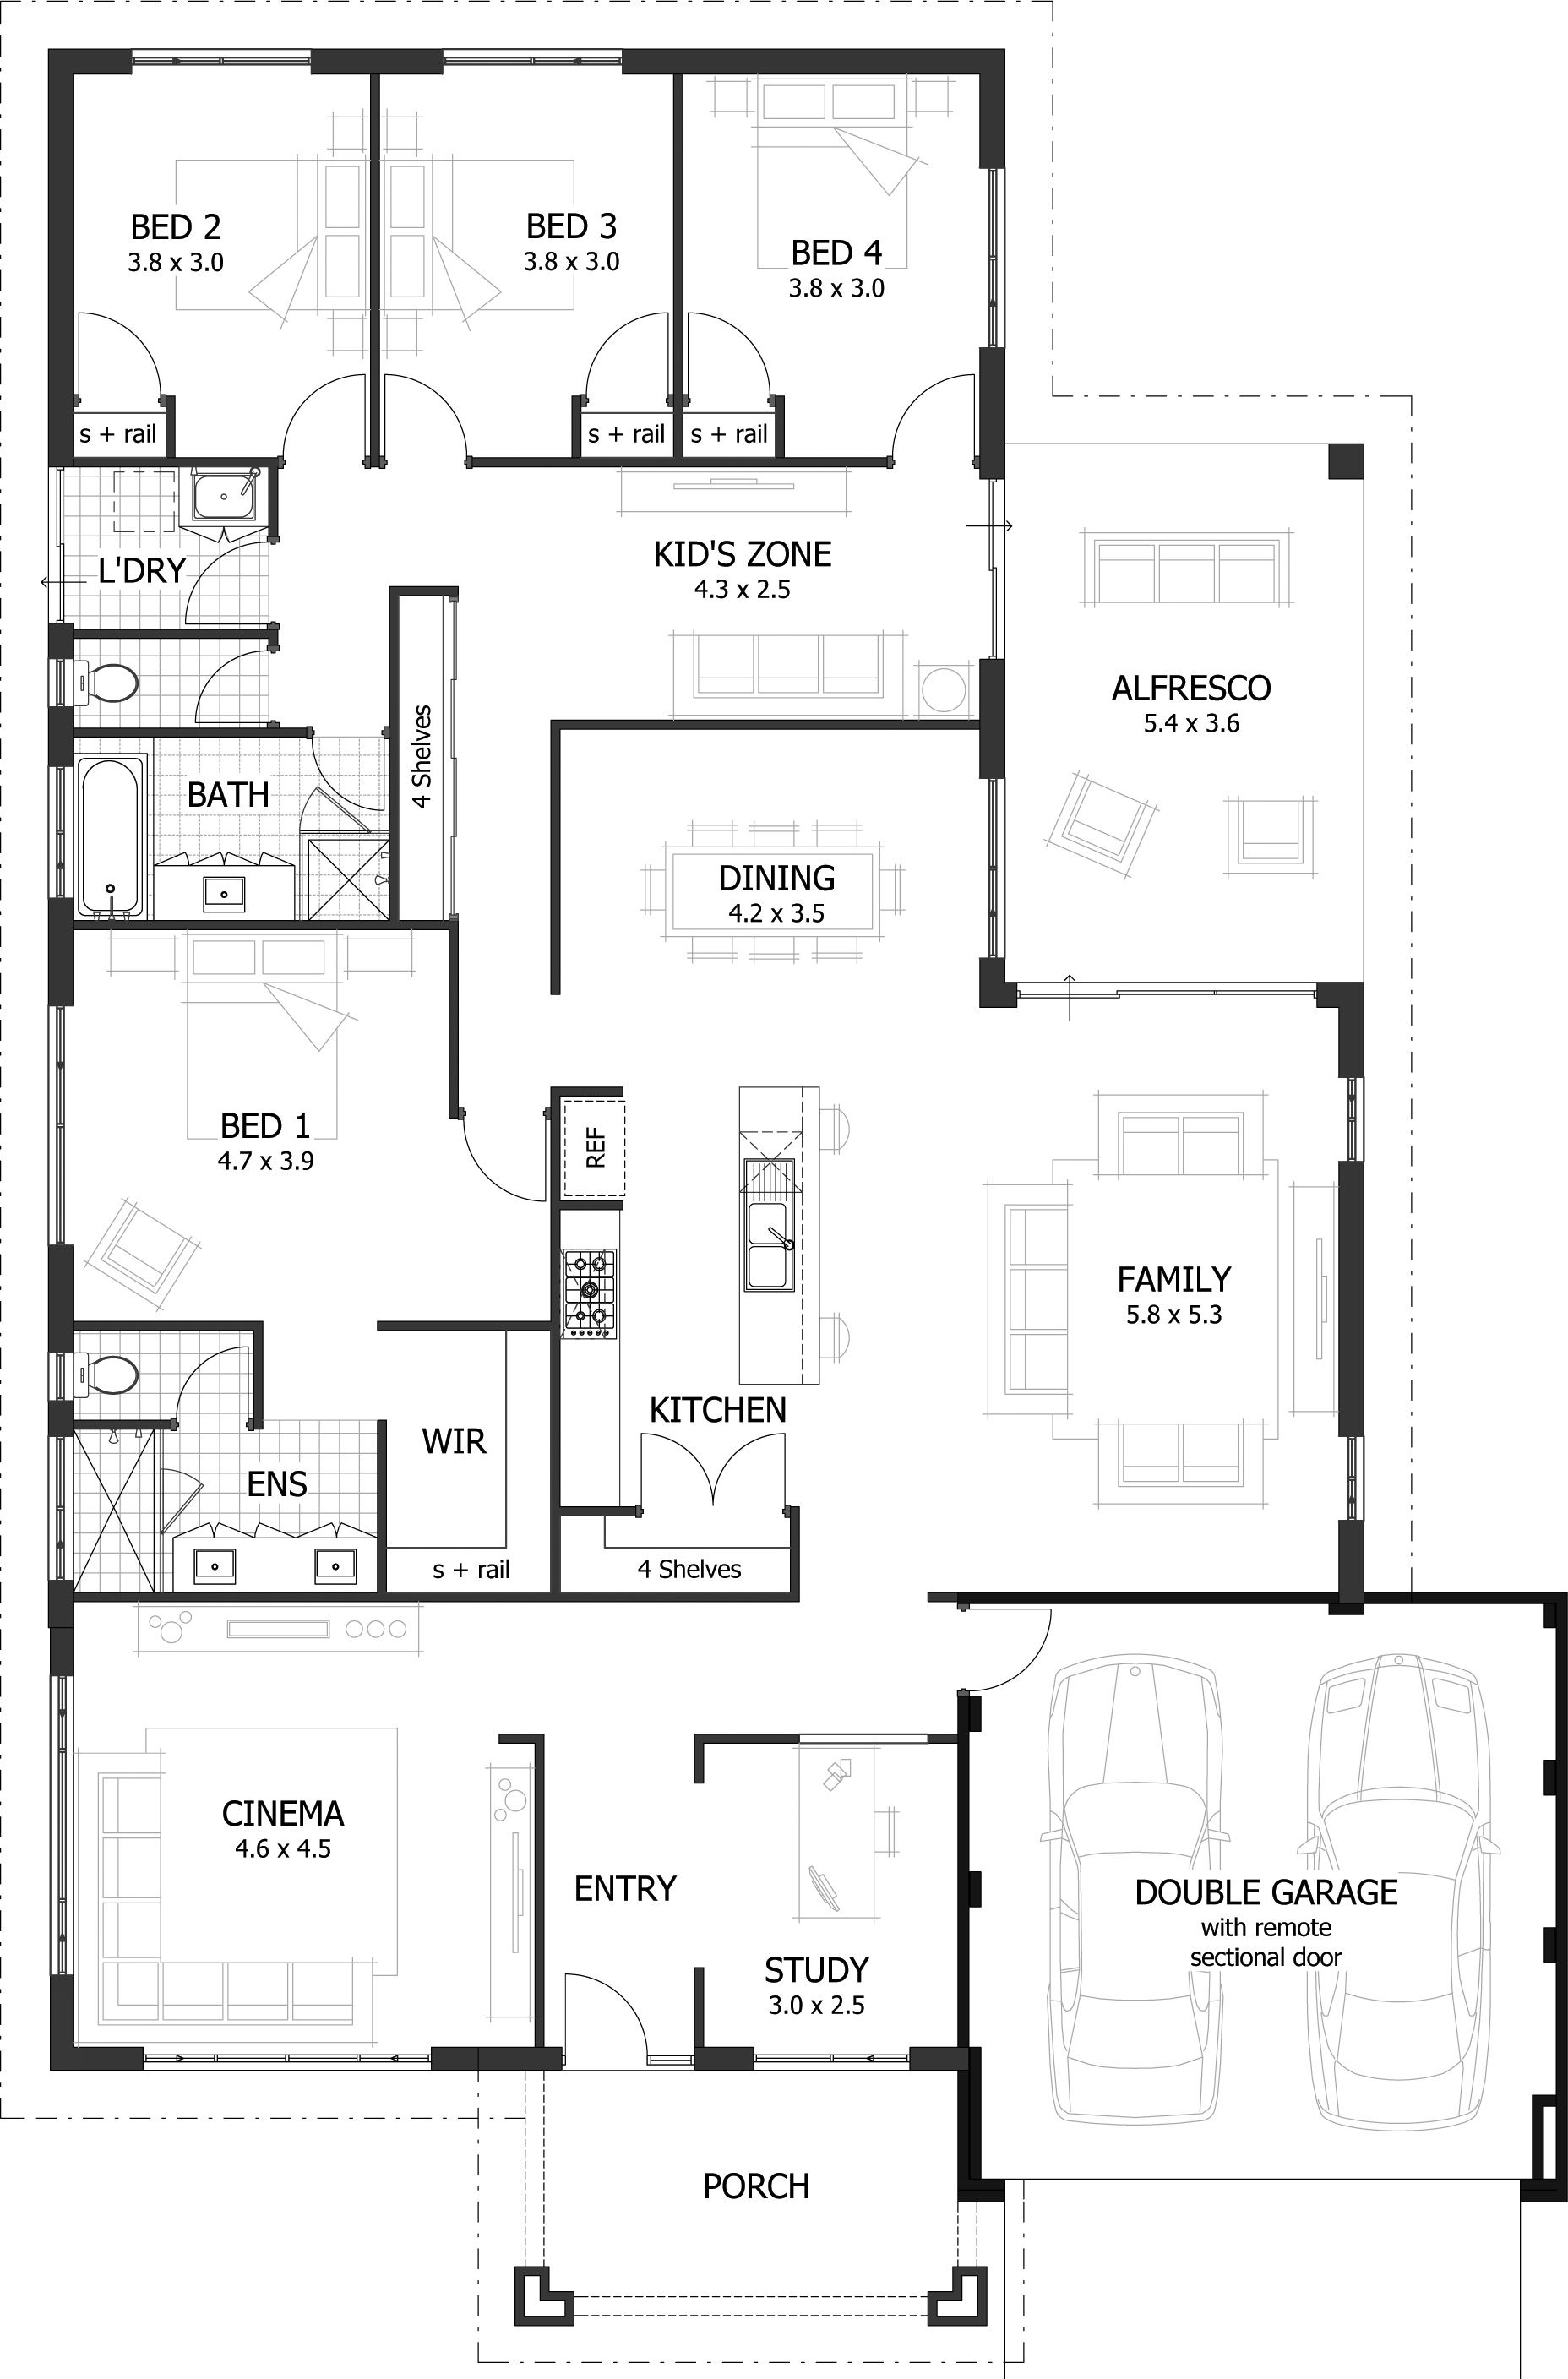 Beautiful 4 Bedroom House Plans U0026 Home Designs | Celebration Homes